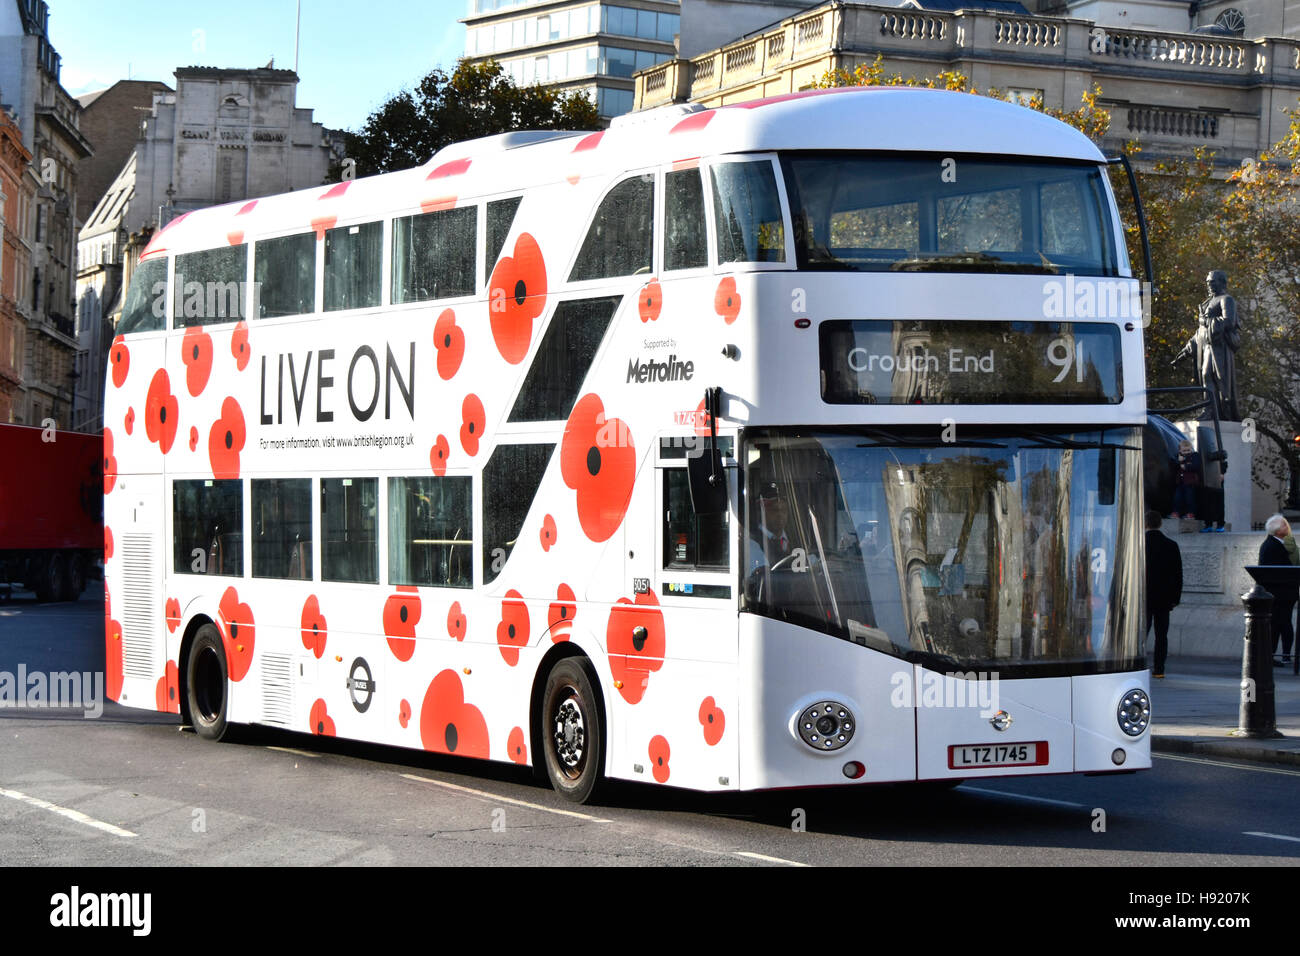 Public transport Boris bus double decker London bus operated by Metroline with poppy graphics to promote Annual - Stock Image